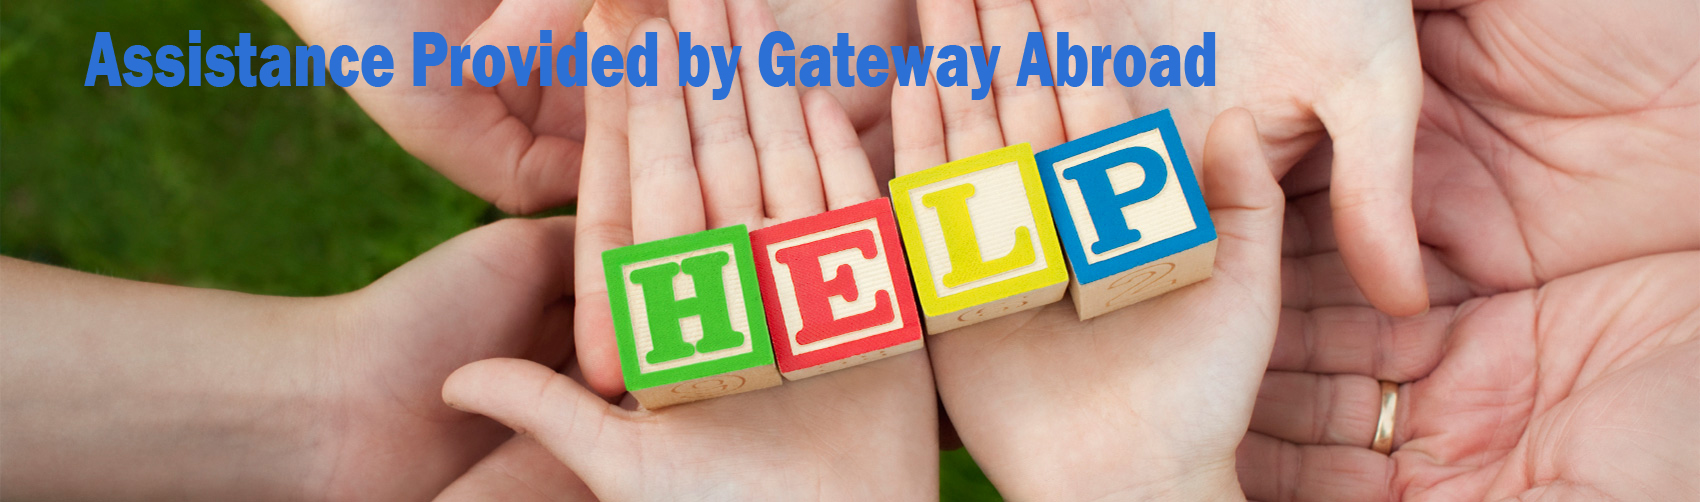 Assistance provided by Gateway Abroad